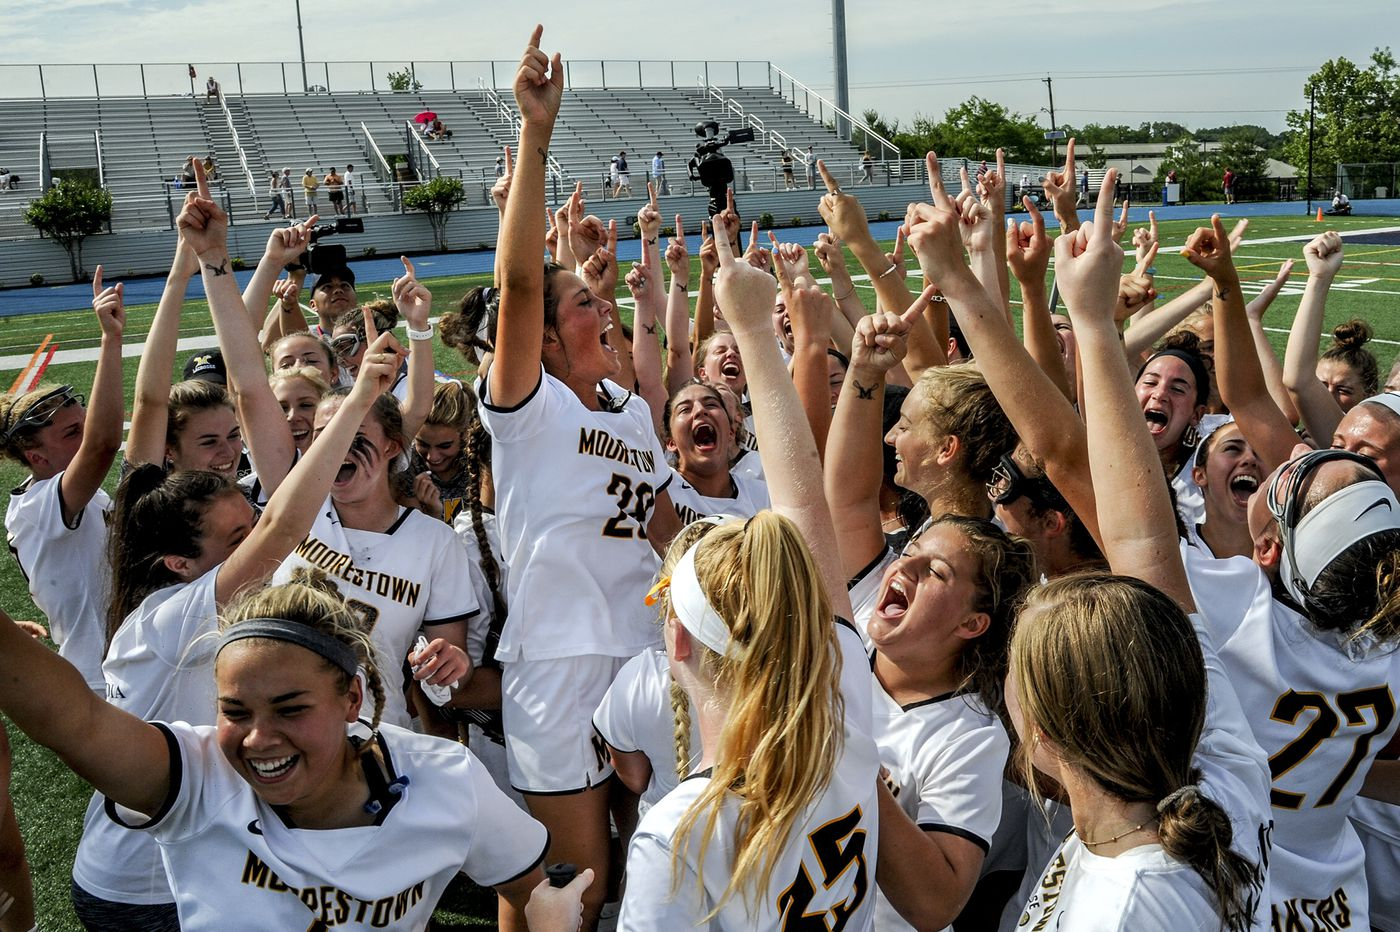 Moorestown girls' lacrosse gets another chance at Tournament of Champions history